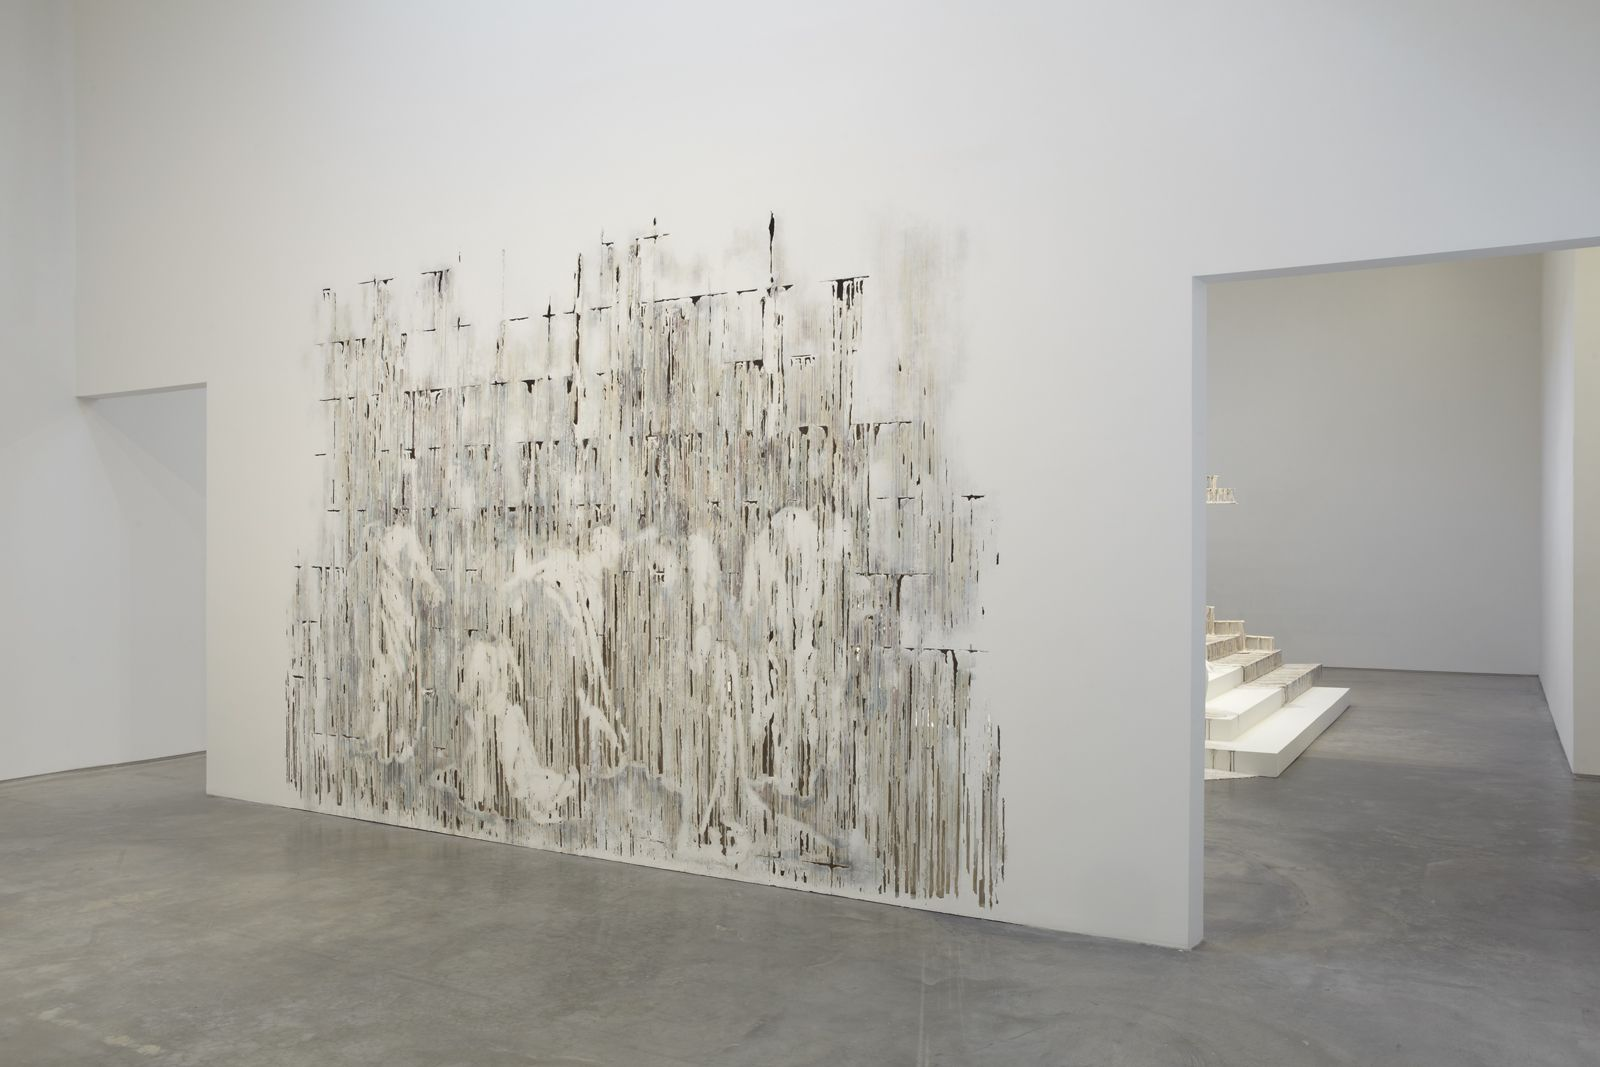 Divided Line, 2012, polymer gypsum, fiberglass, gypsum board, plaster, wood, steel, paint